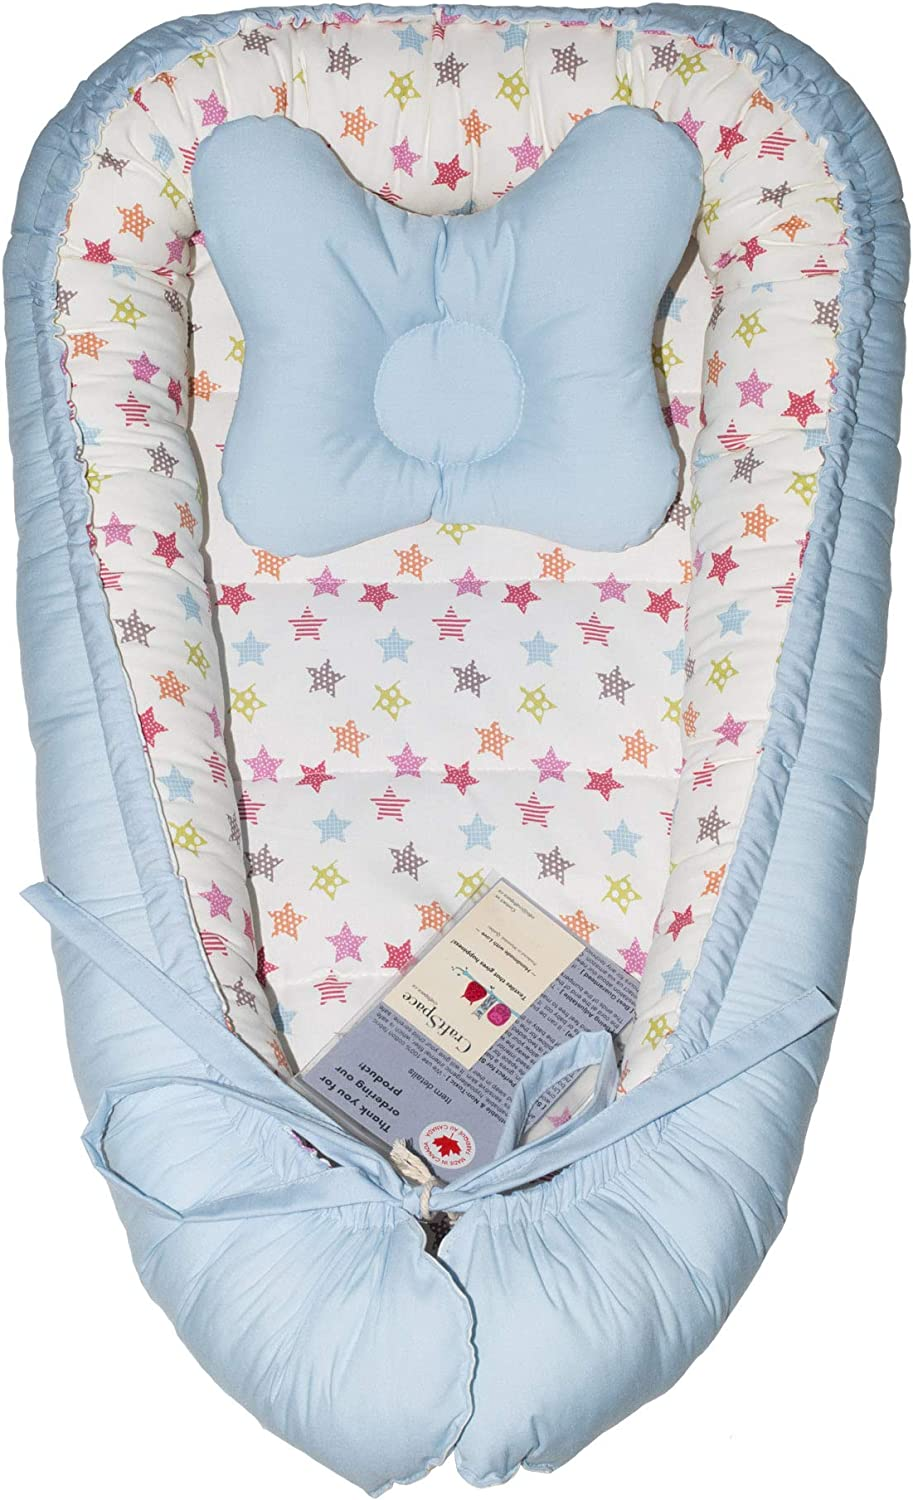 Cotton and Hypoallergenic filler Lounger + Pillow Light blue//Brown stars Double-sides CraftSpace Deluxe Baby Set for newborn babies Various Designs 80cm x 50cm.